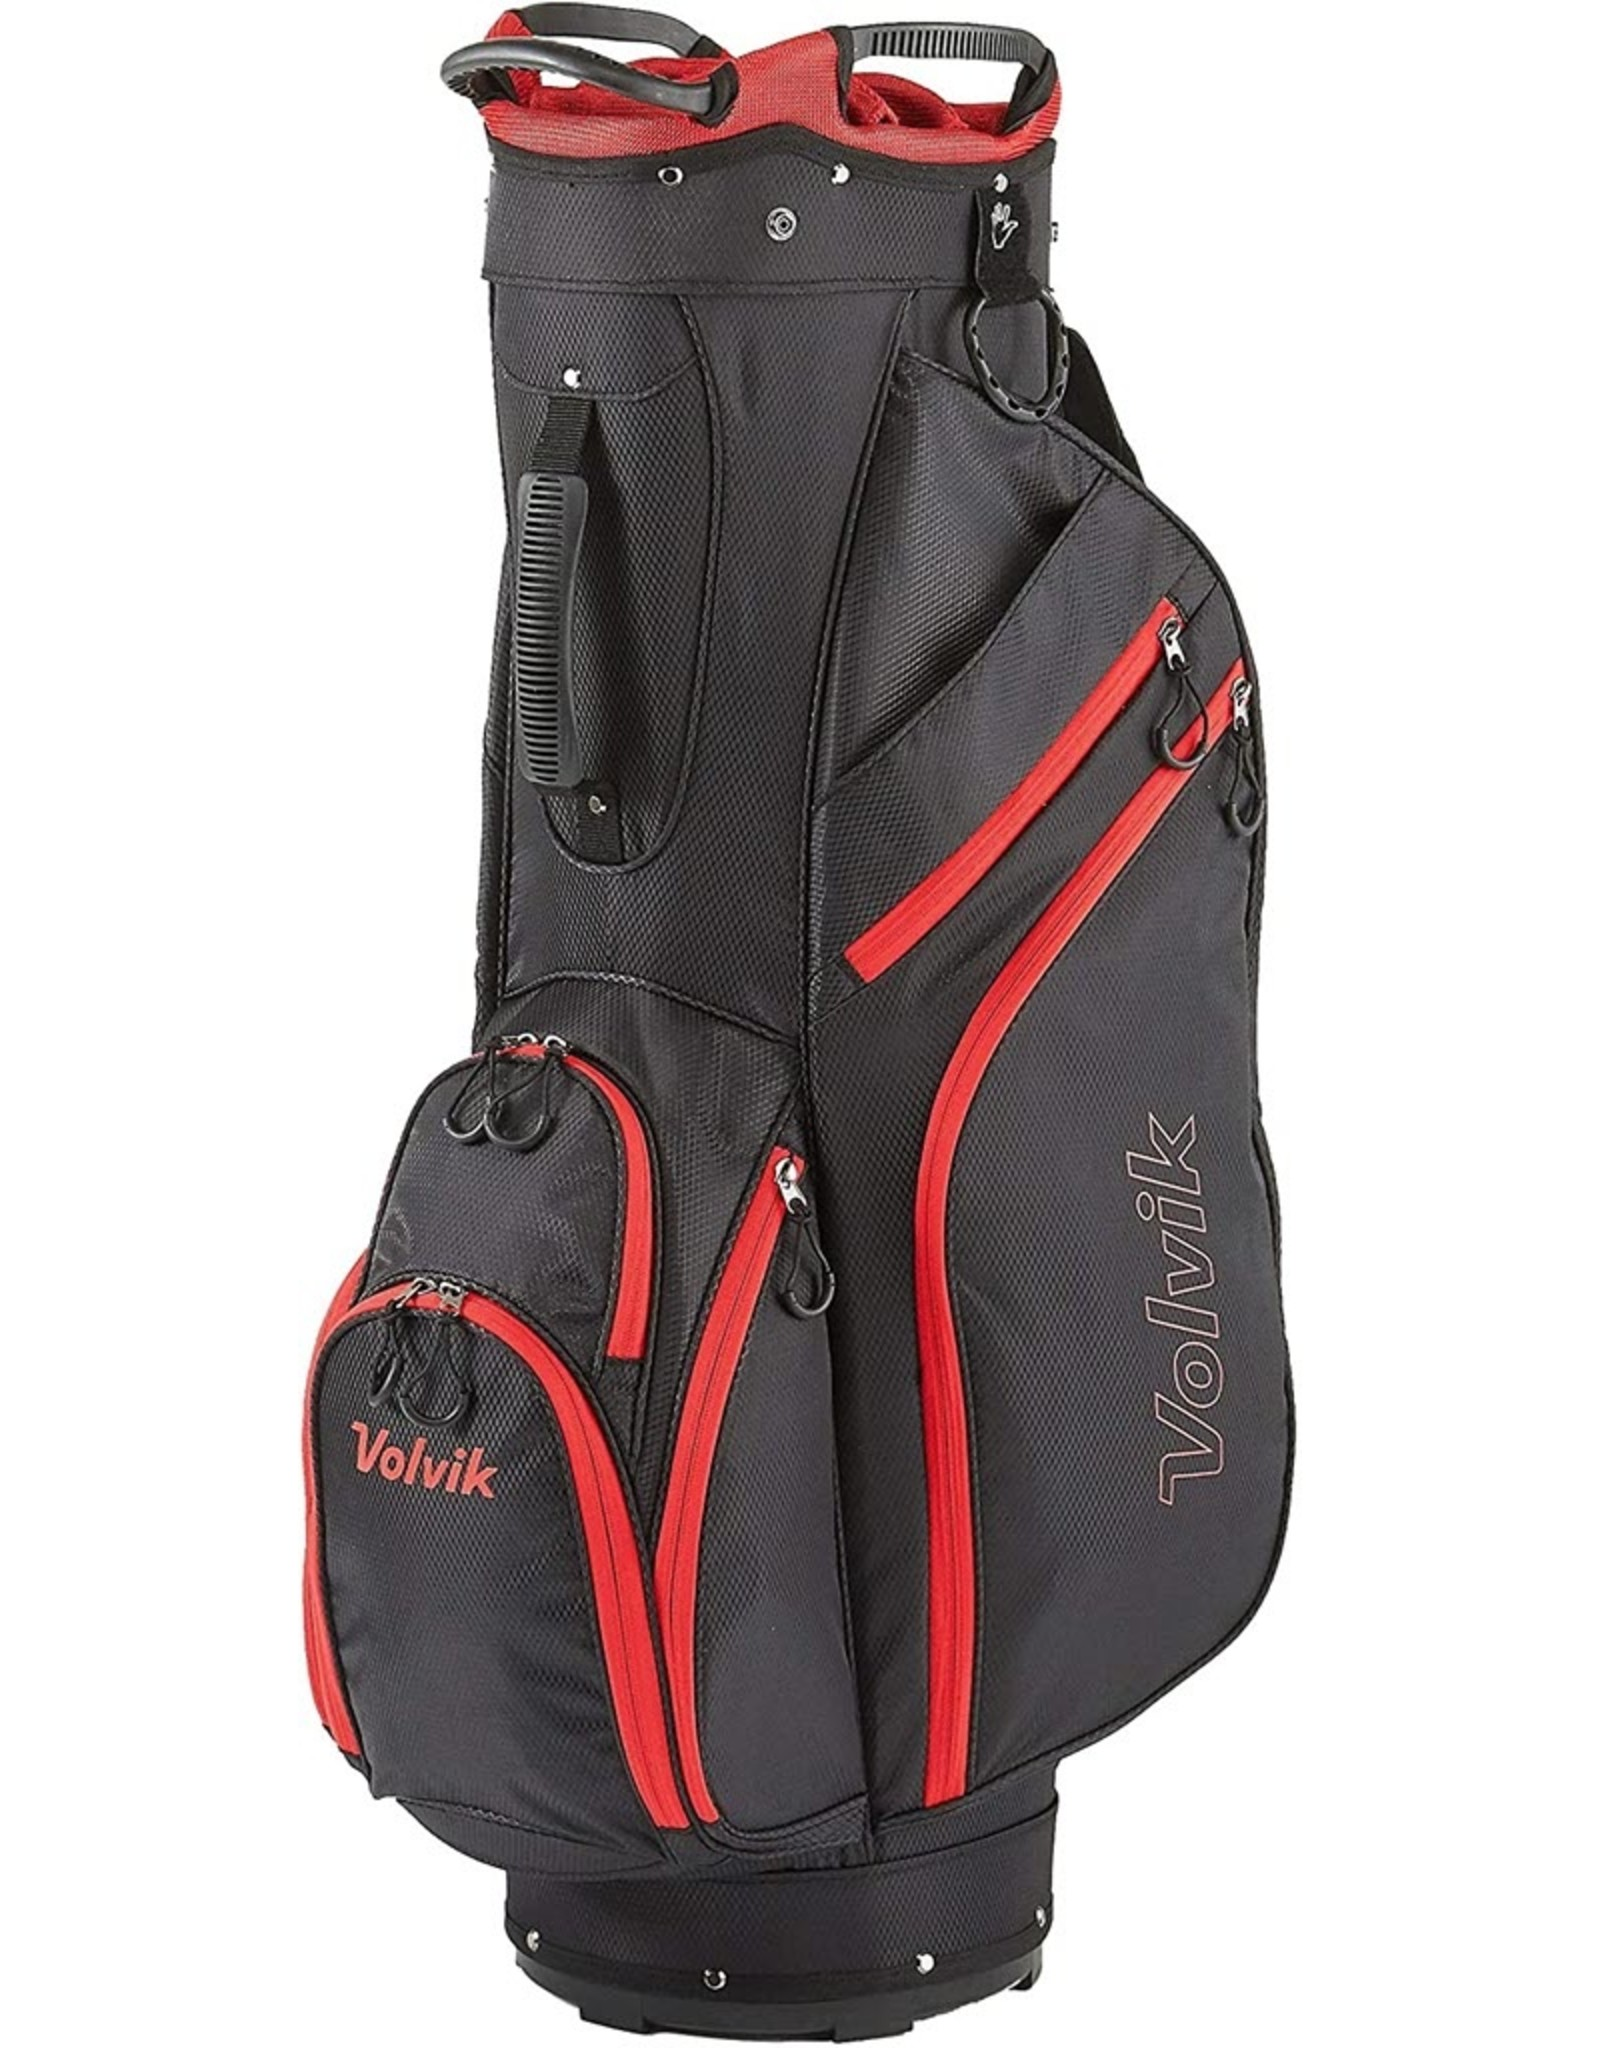 VOLVIK VOLVIK 2021 CART BAG